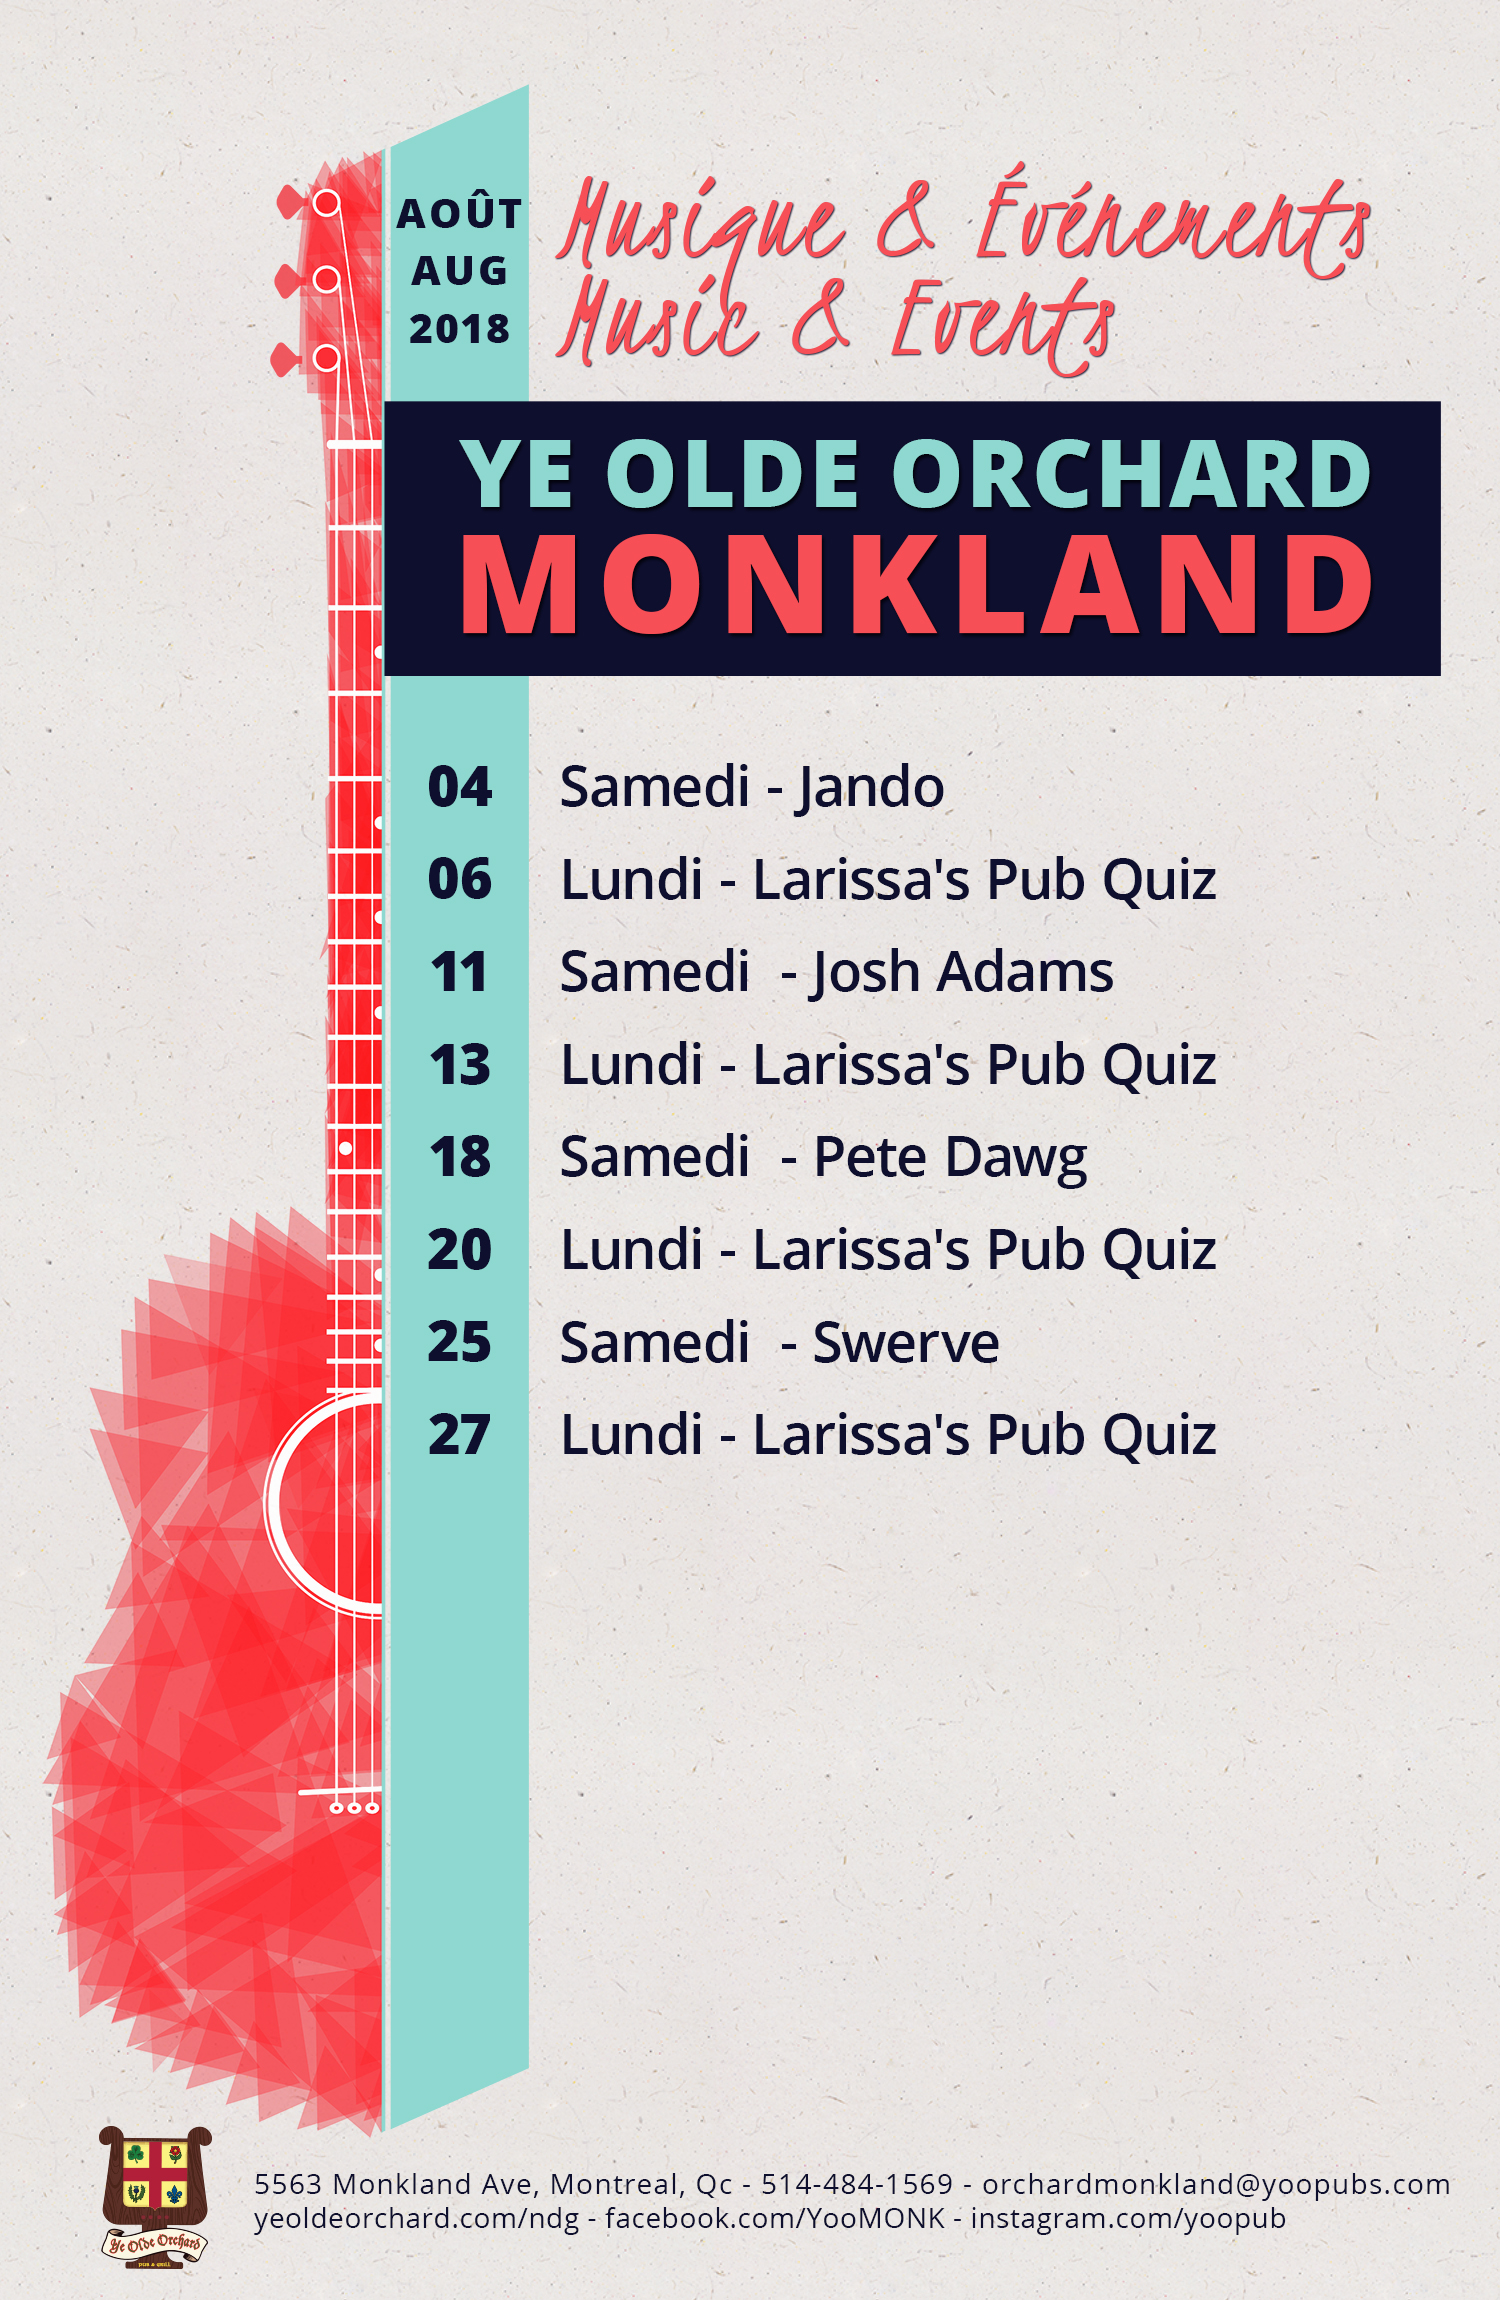 ye-olde-orchard-pub-music-and-events-calendar-monkland-WEB-august-2018